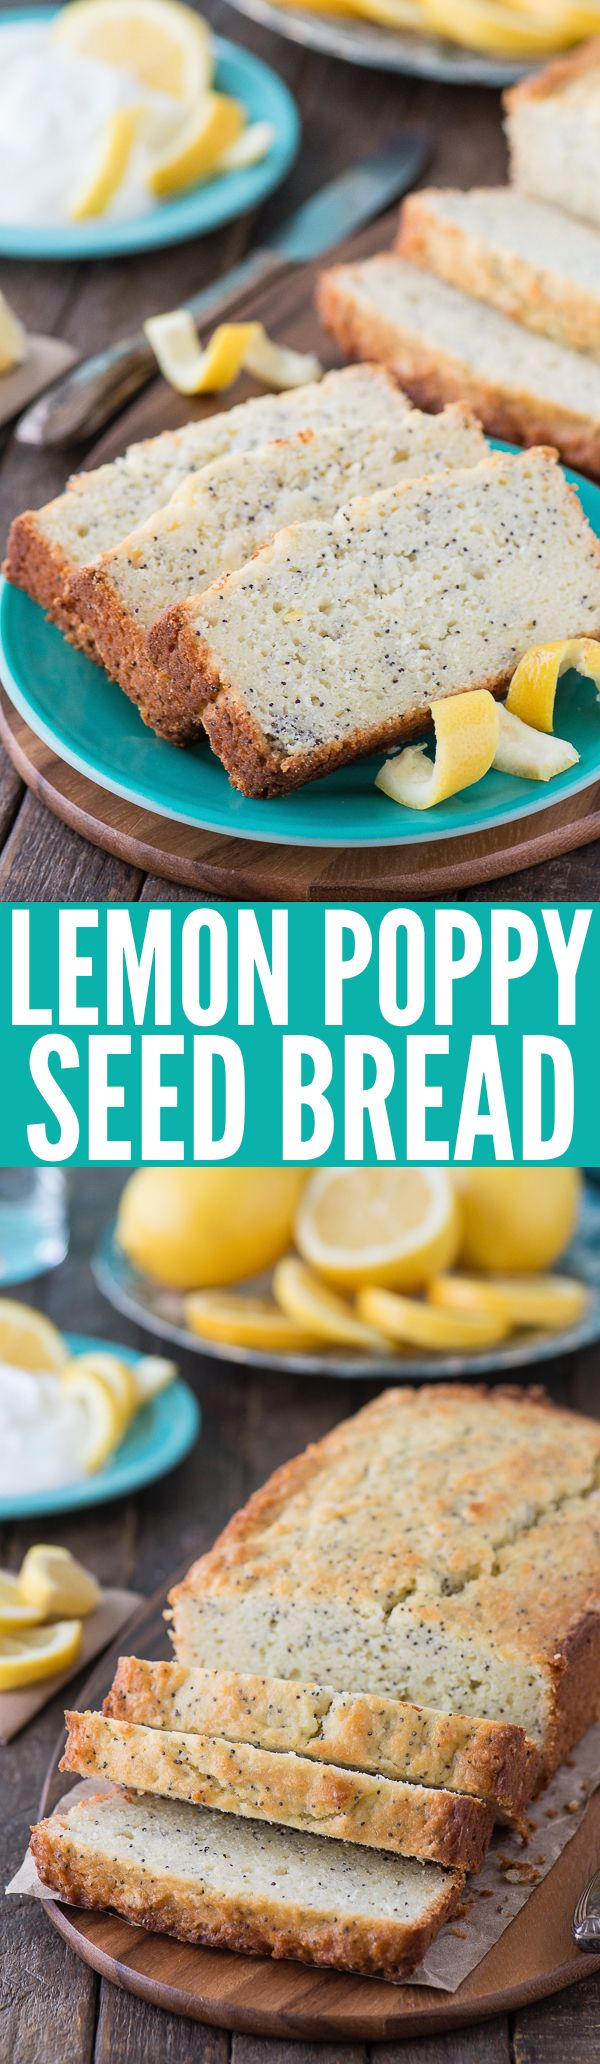 Easy lemon poppy seed bread recipe - 10 minutes to prep and less than ...